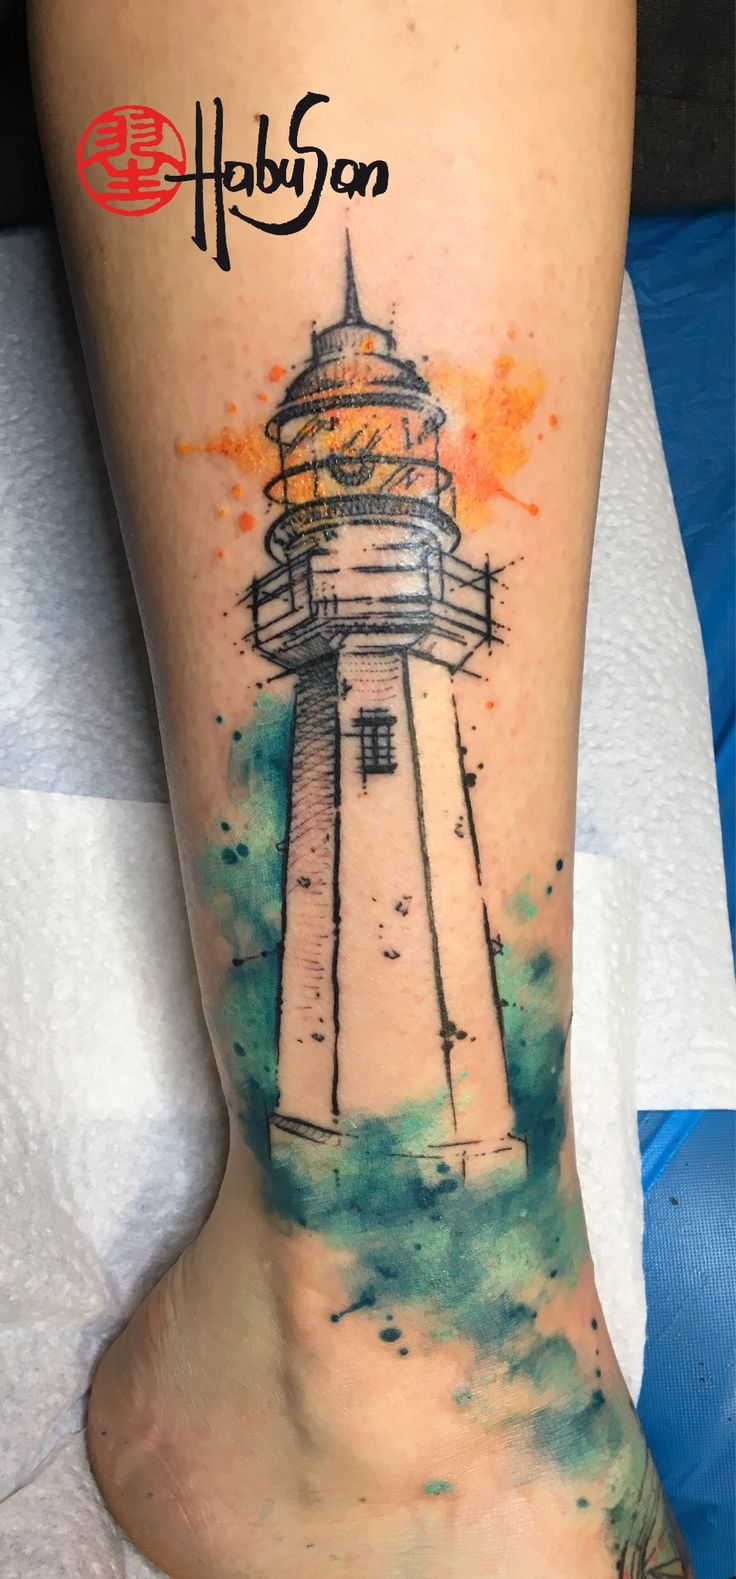 A lighthouse in sketchy optic with watercolor background! Thanks, Julia! #tattoo #habusan #Vienna #watercolourtattoo